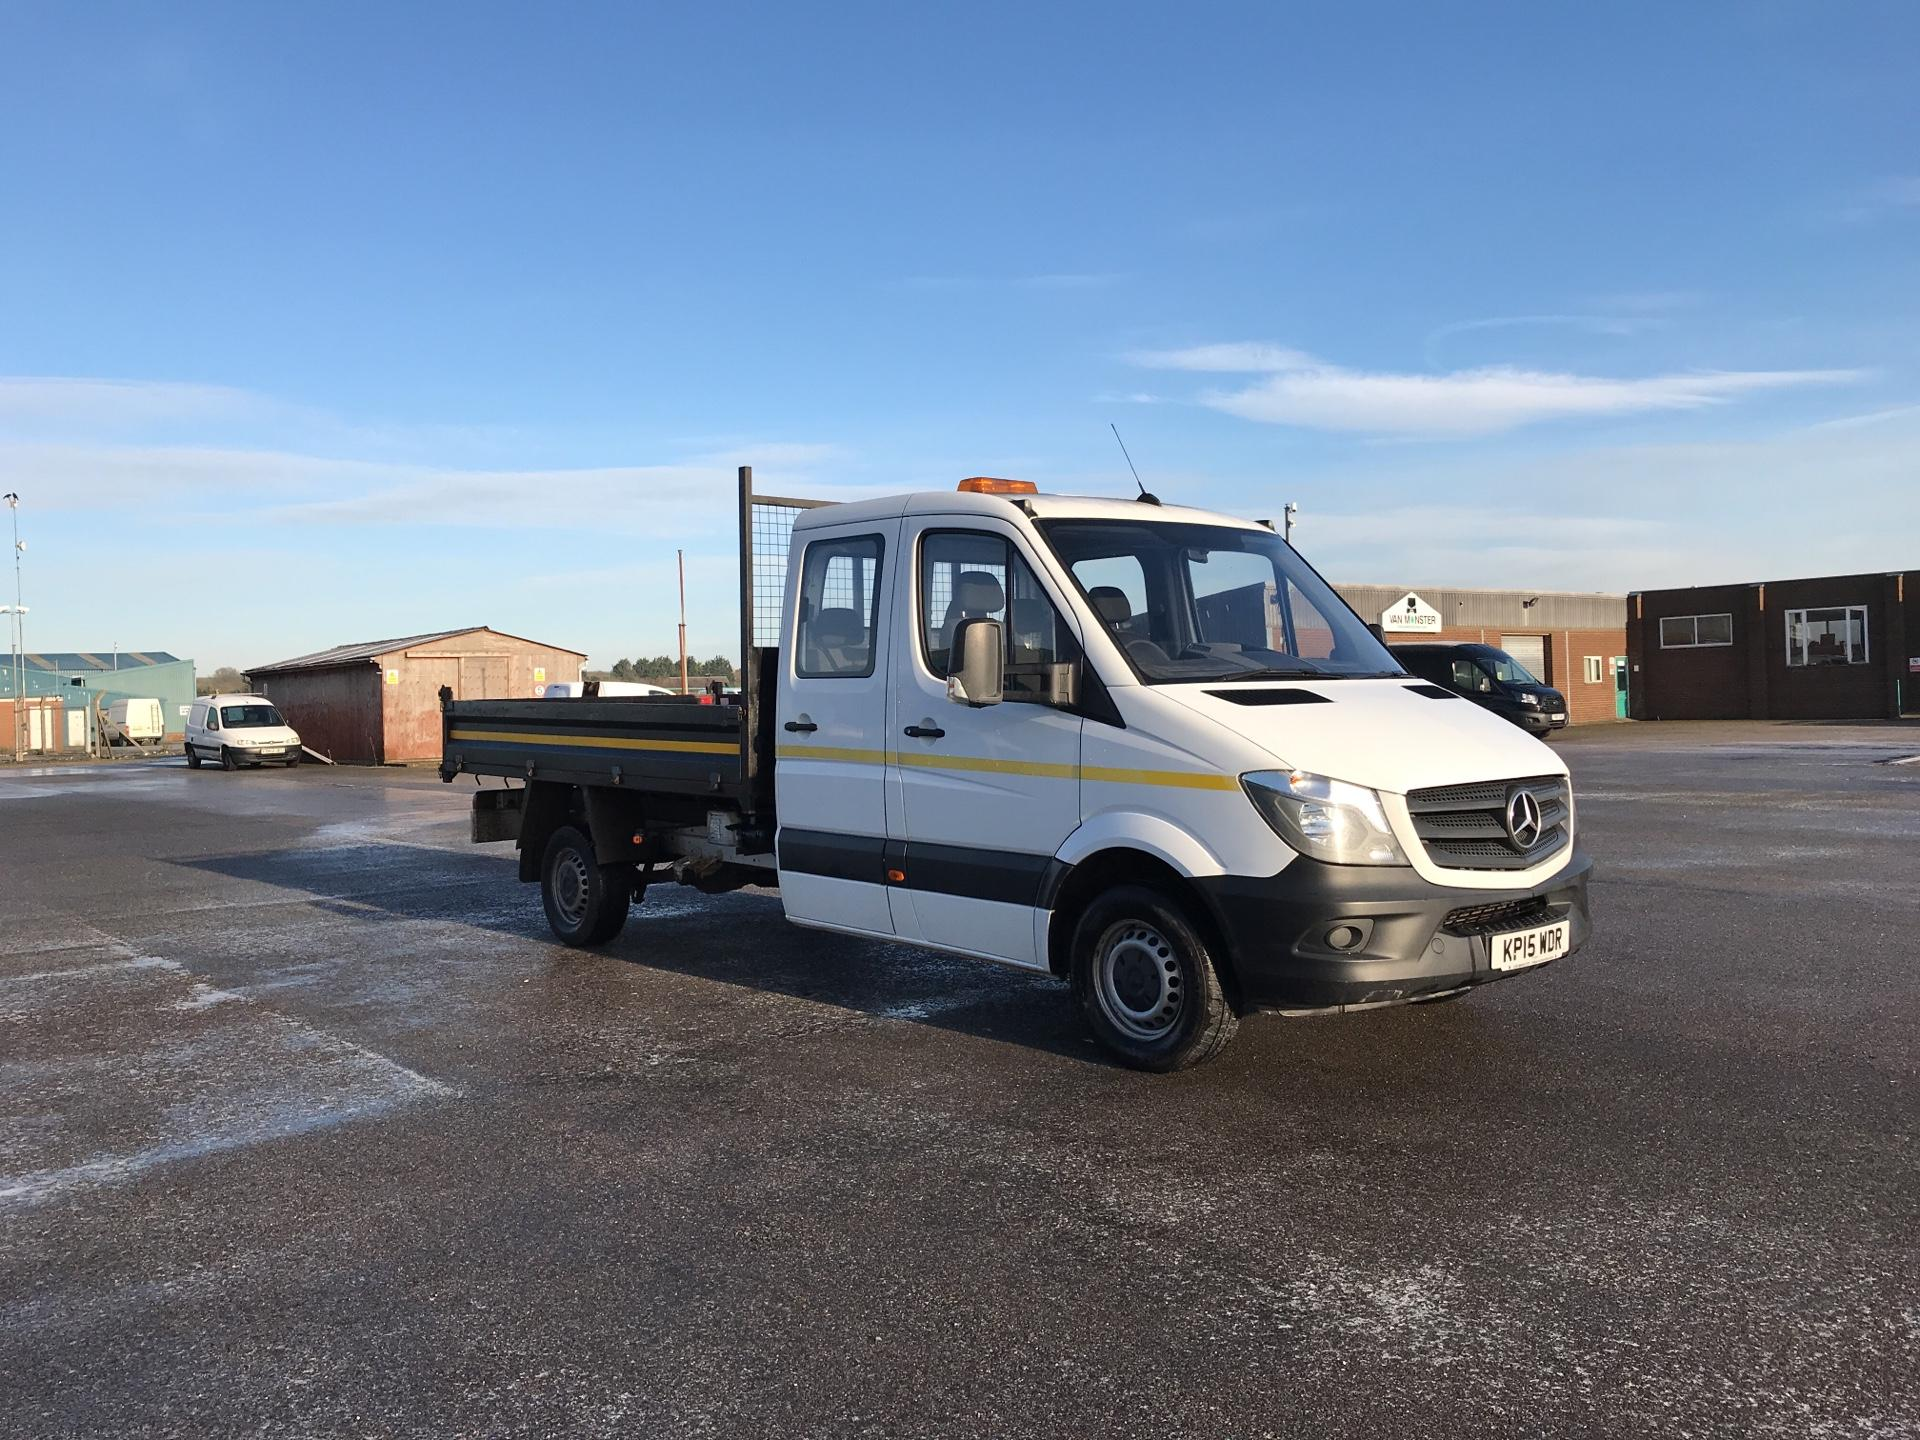 2015 Mercedes-Benz Sprinter 313 LONG CREW CAB TIPPER EURO 5. VALUE RANGE VEHICLE - CONDITION REFLECTED IN PRICE (KP15WDR)